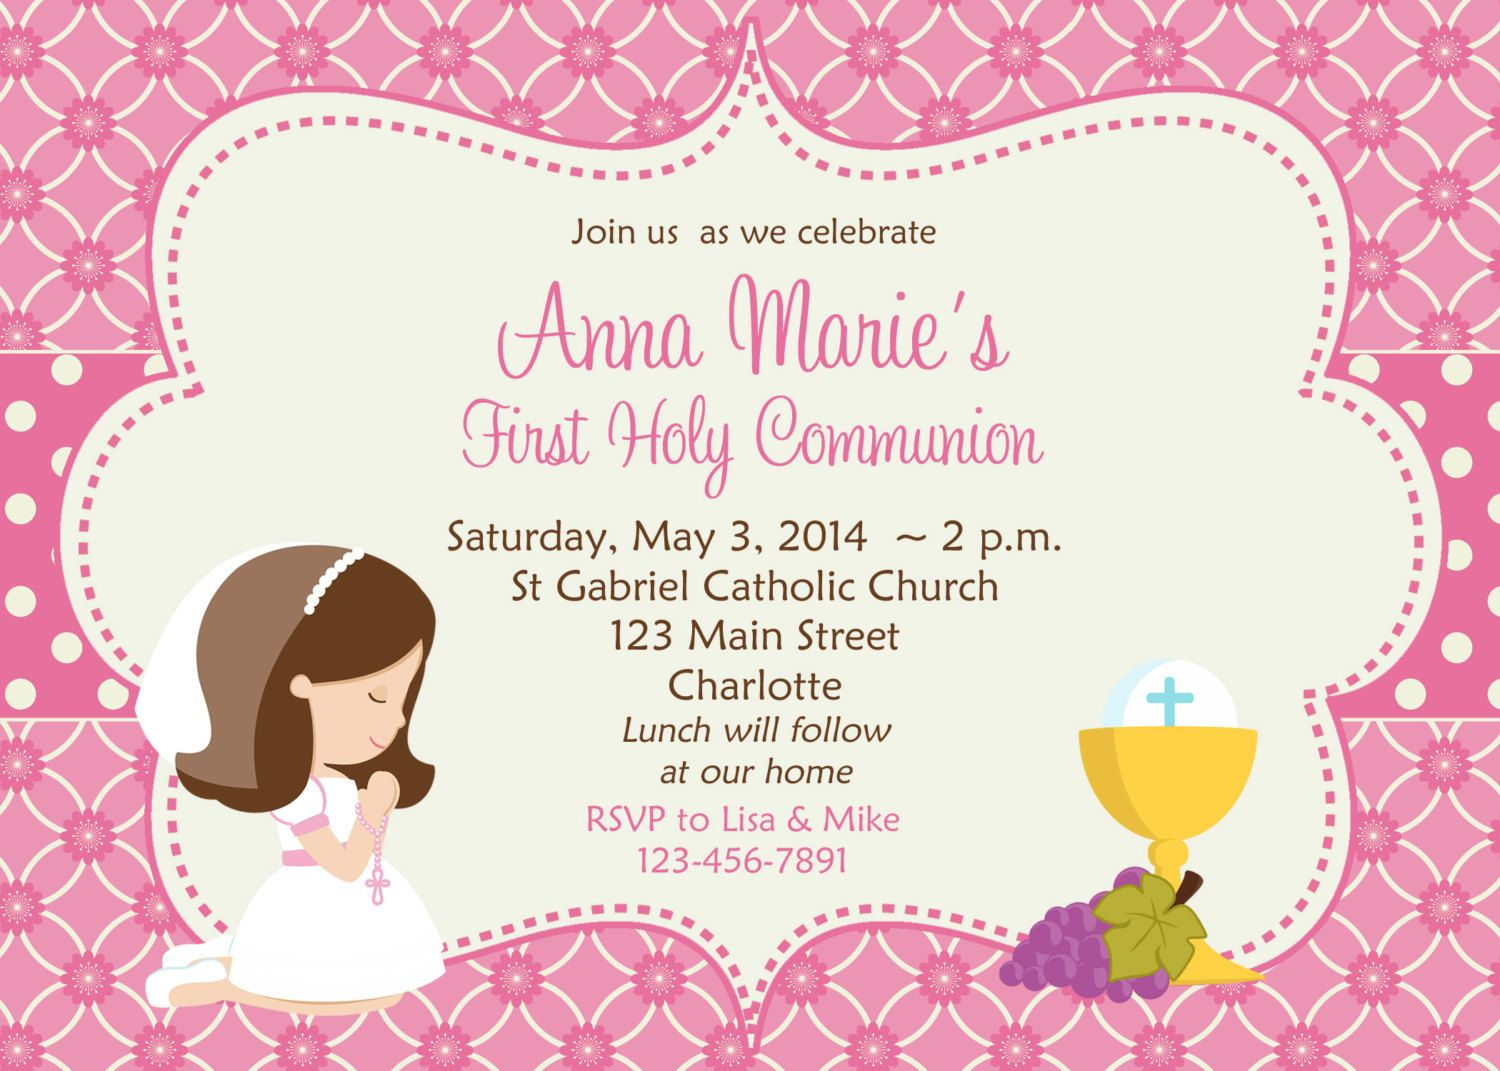 First Holy Communion Invitation Cards Free | First Communion Ideas - First Holy Communion Cards Printable Free